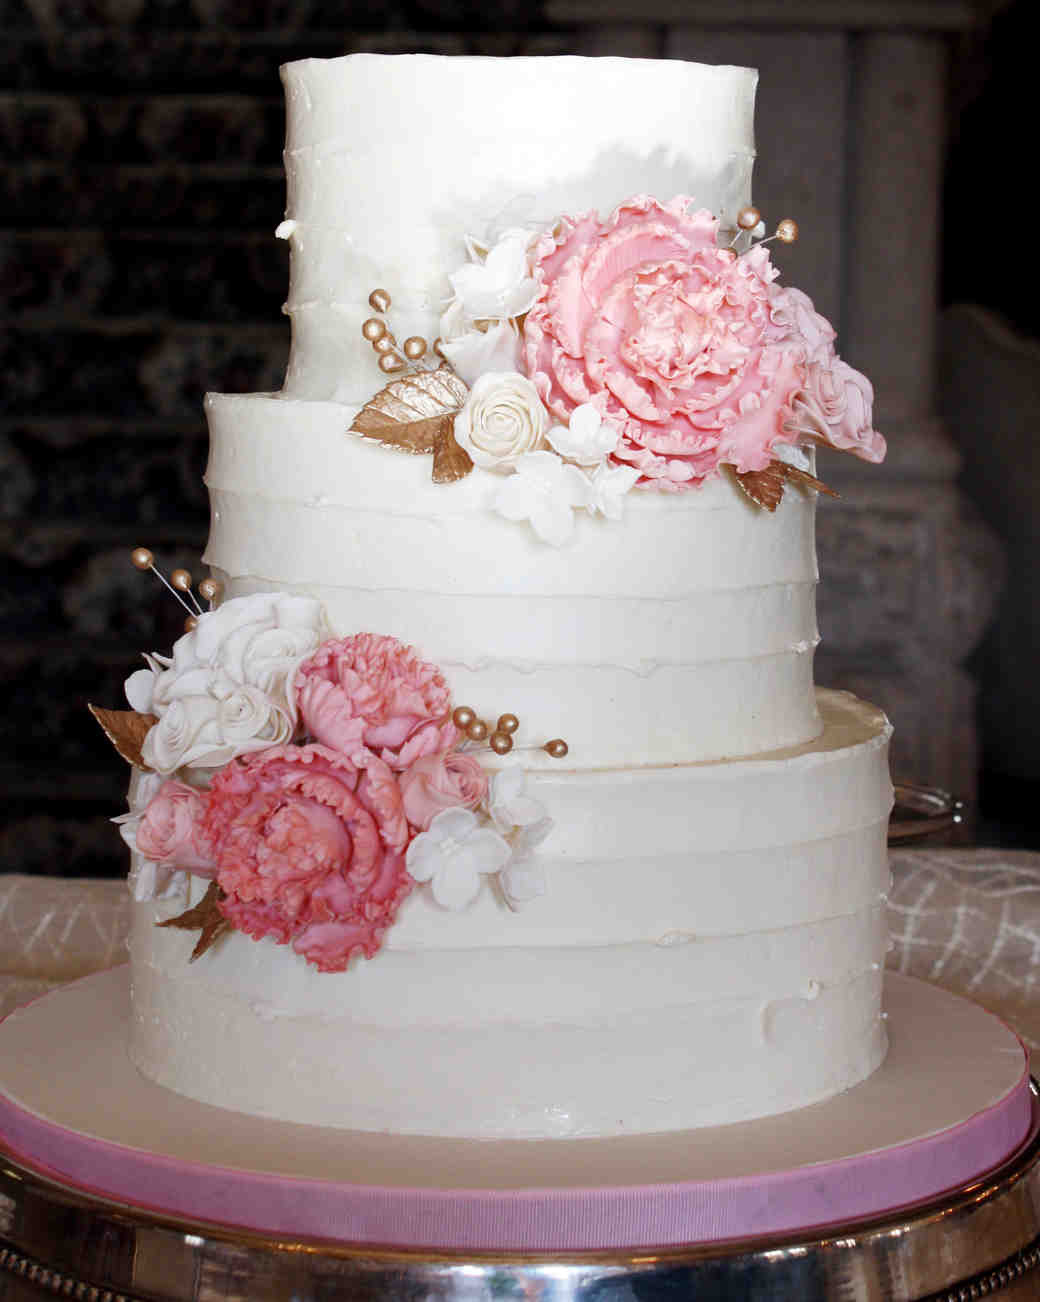 Best Icing for Wedding Cakes Best 20 A Sweet Guide to Choosing A Frosting for Your Wedding Cake